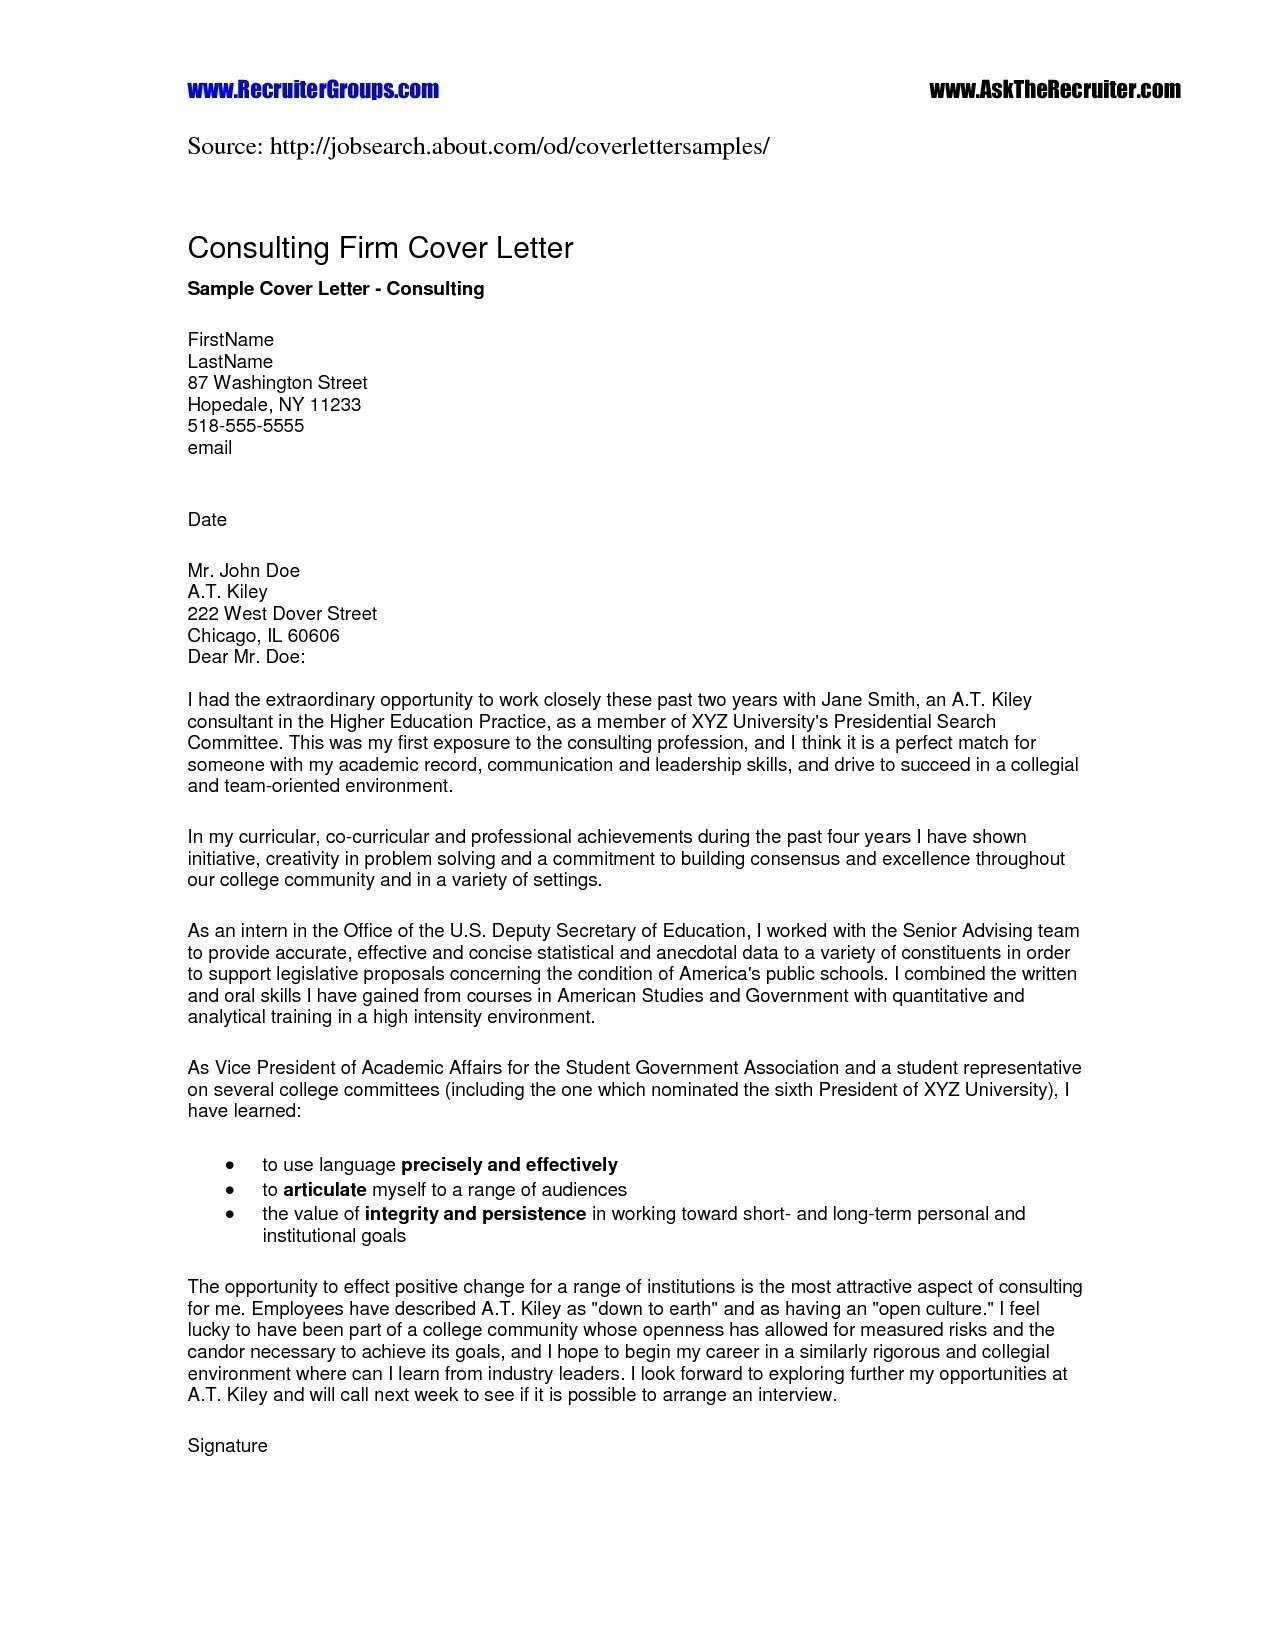 Job Offer Decline Letter Template - How to Write Job Fer Letter Fresh Job Fer Letter Sample Best Job